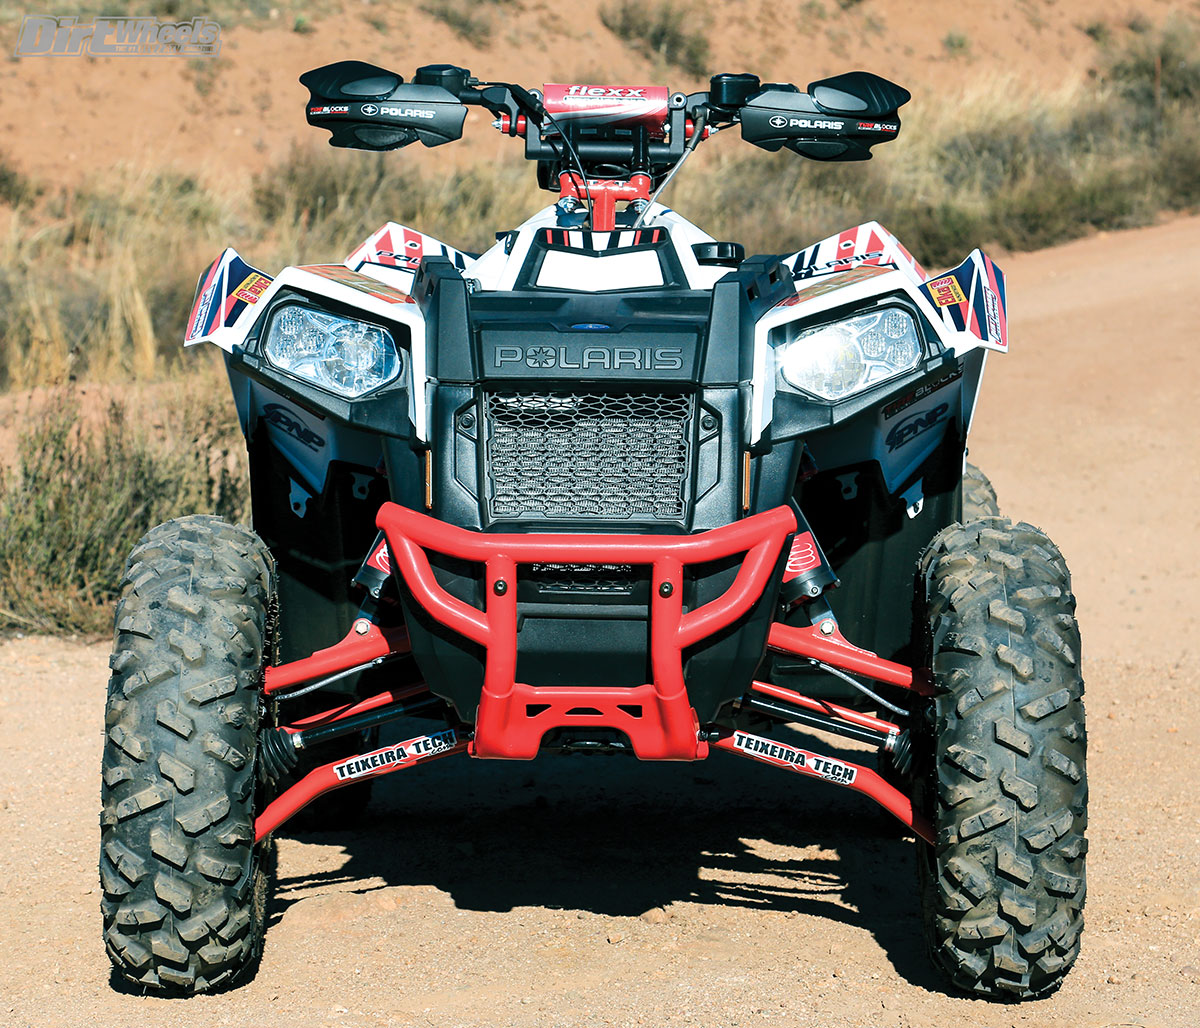 The Teixeira Tech XGC (Xtreme Ground Clearance) WX A-arms are a big improvement over the stock arms when it comes to ground clearance, and they offer 2 degrees of caster for improved handling.